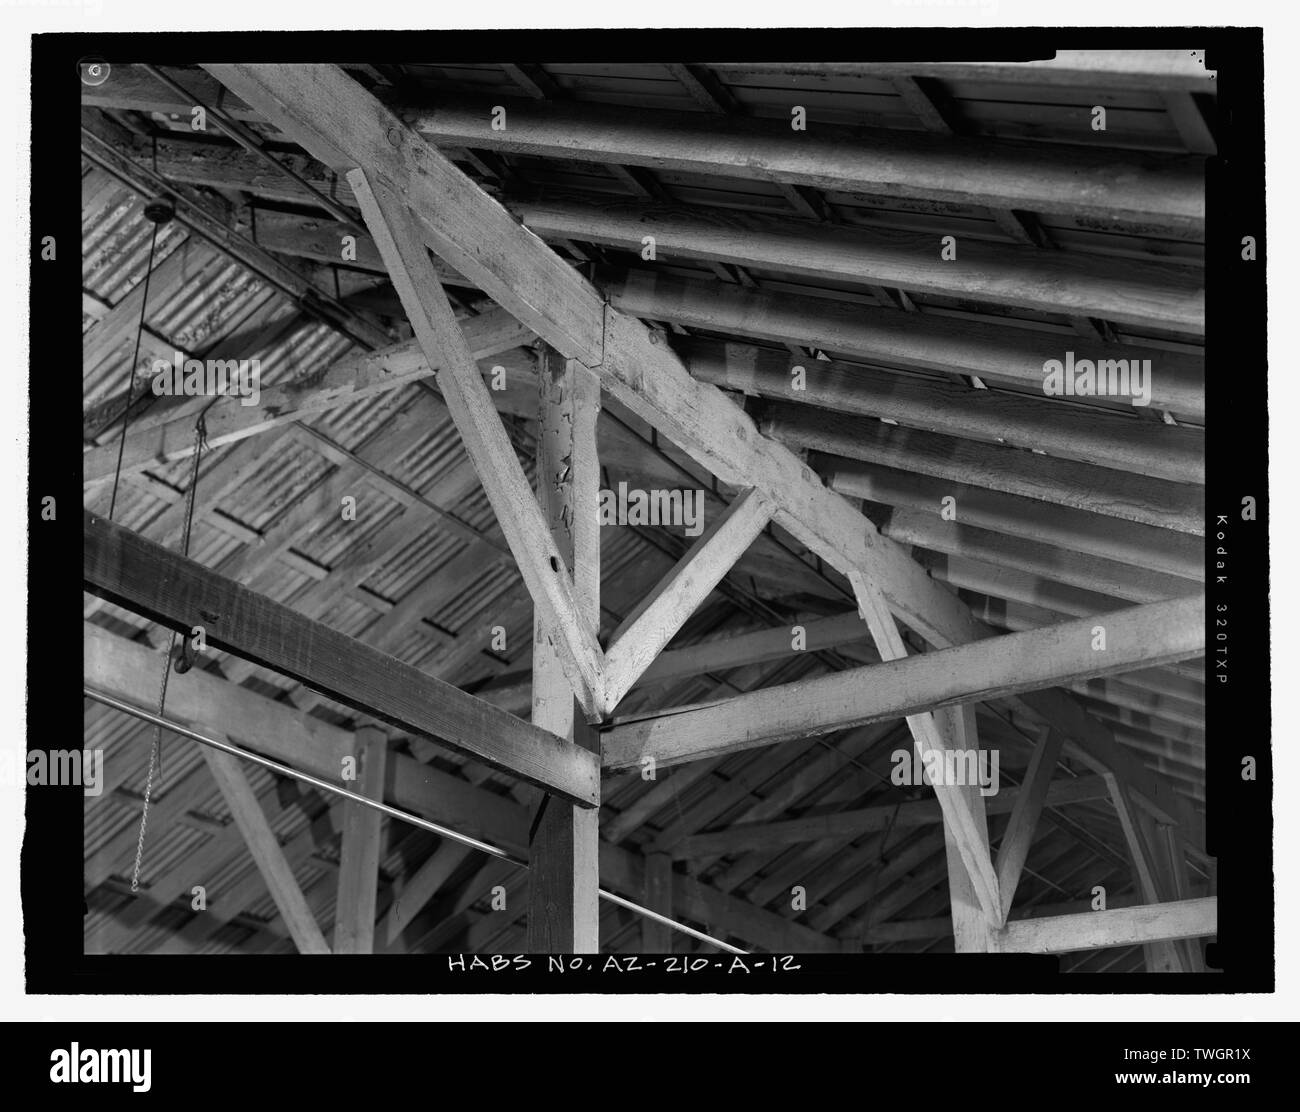 ROOF FRAMING DETAIL ABOVE CENTER AISLE, FROM SOUTHWEST - Fort Huachuca, Cavalry Stable, Clarkson Road, Sierra Vista, Cochise County, AZ - Stock Image